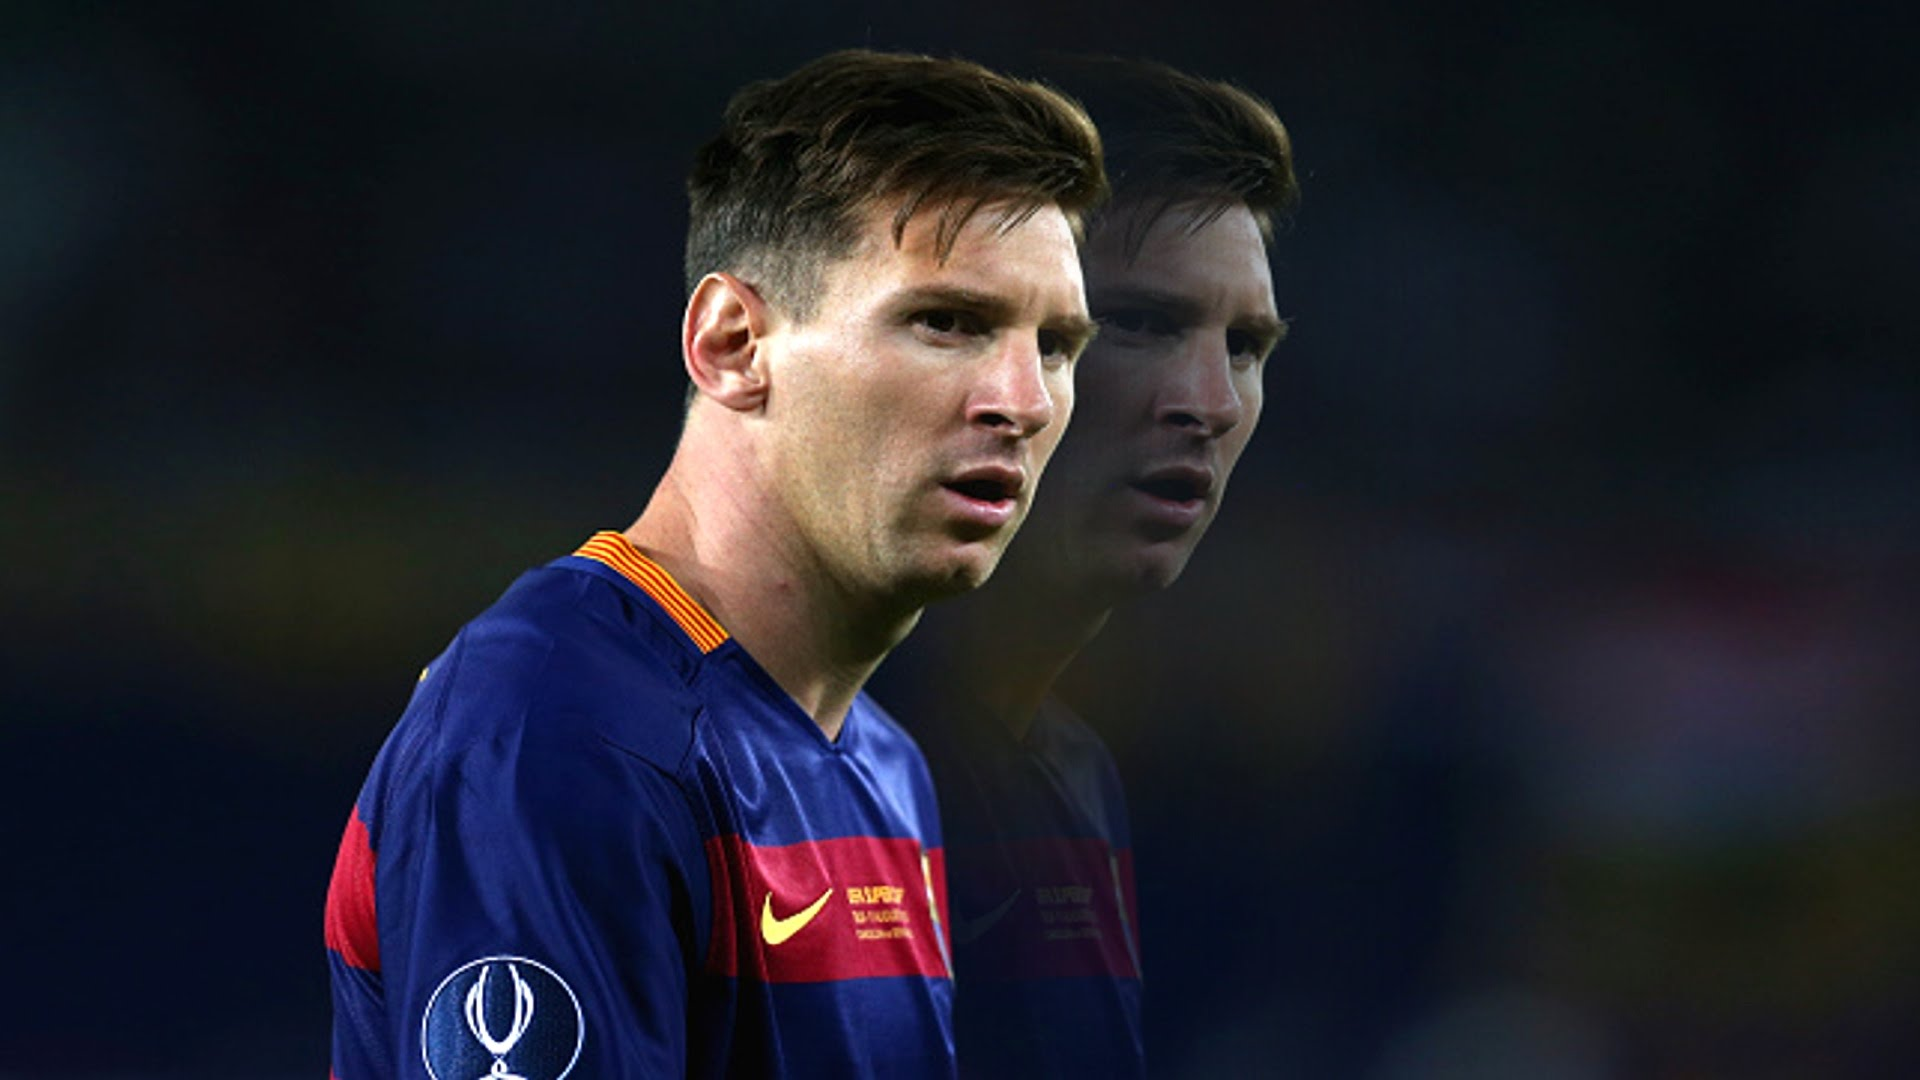 Lionel Messi Wallpapers Full Hd Download Free